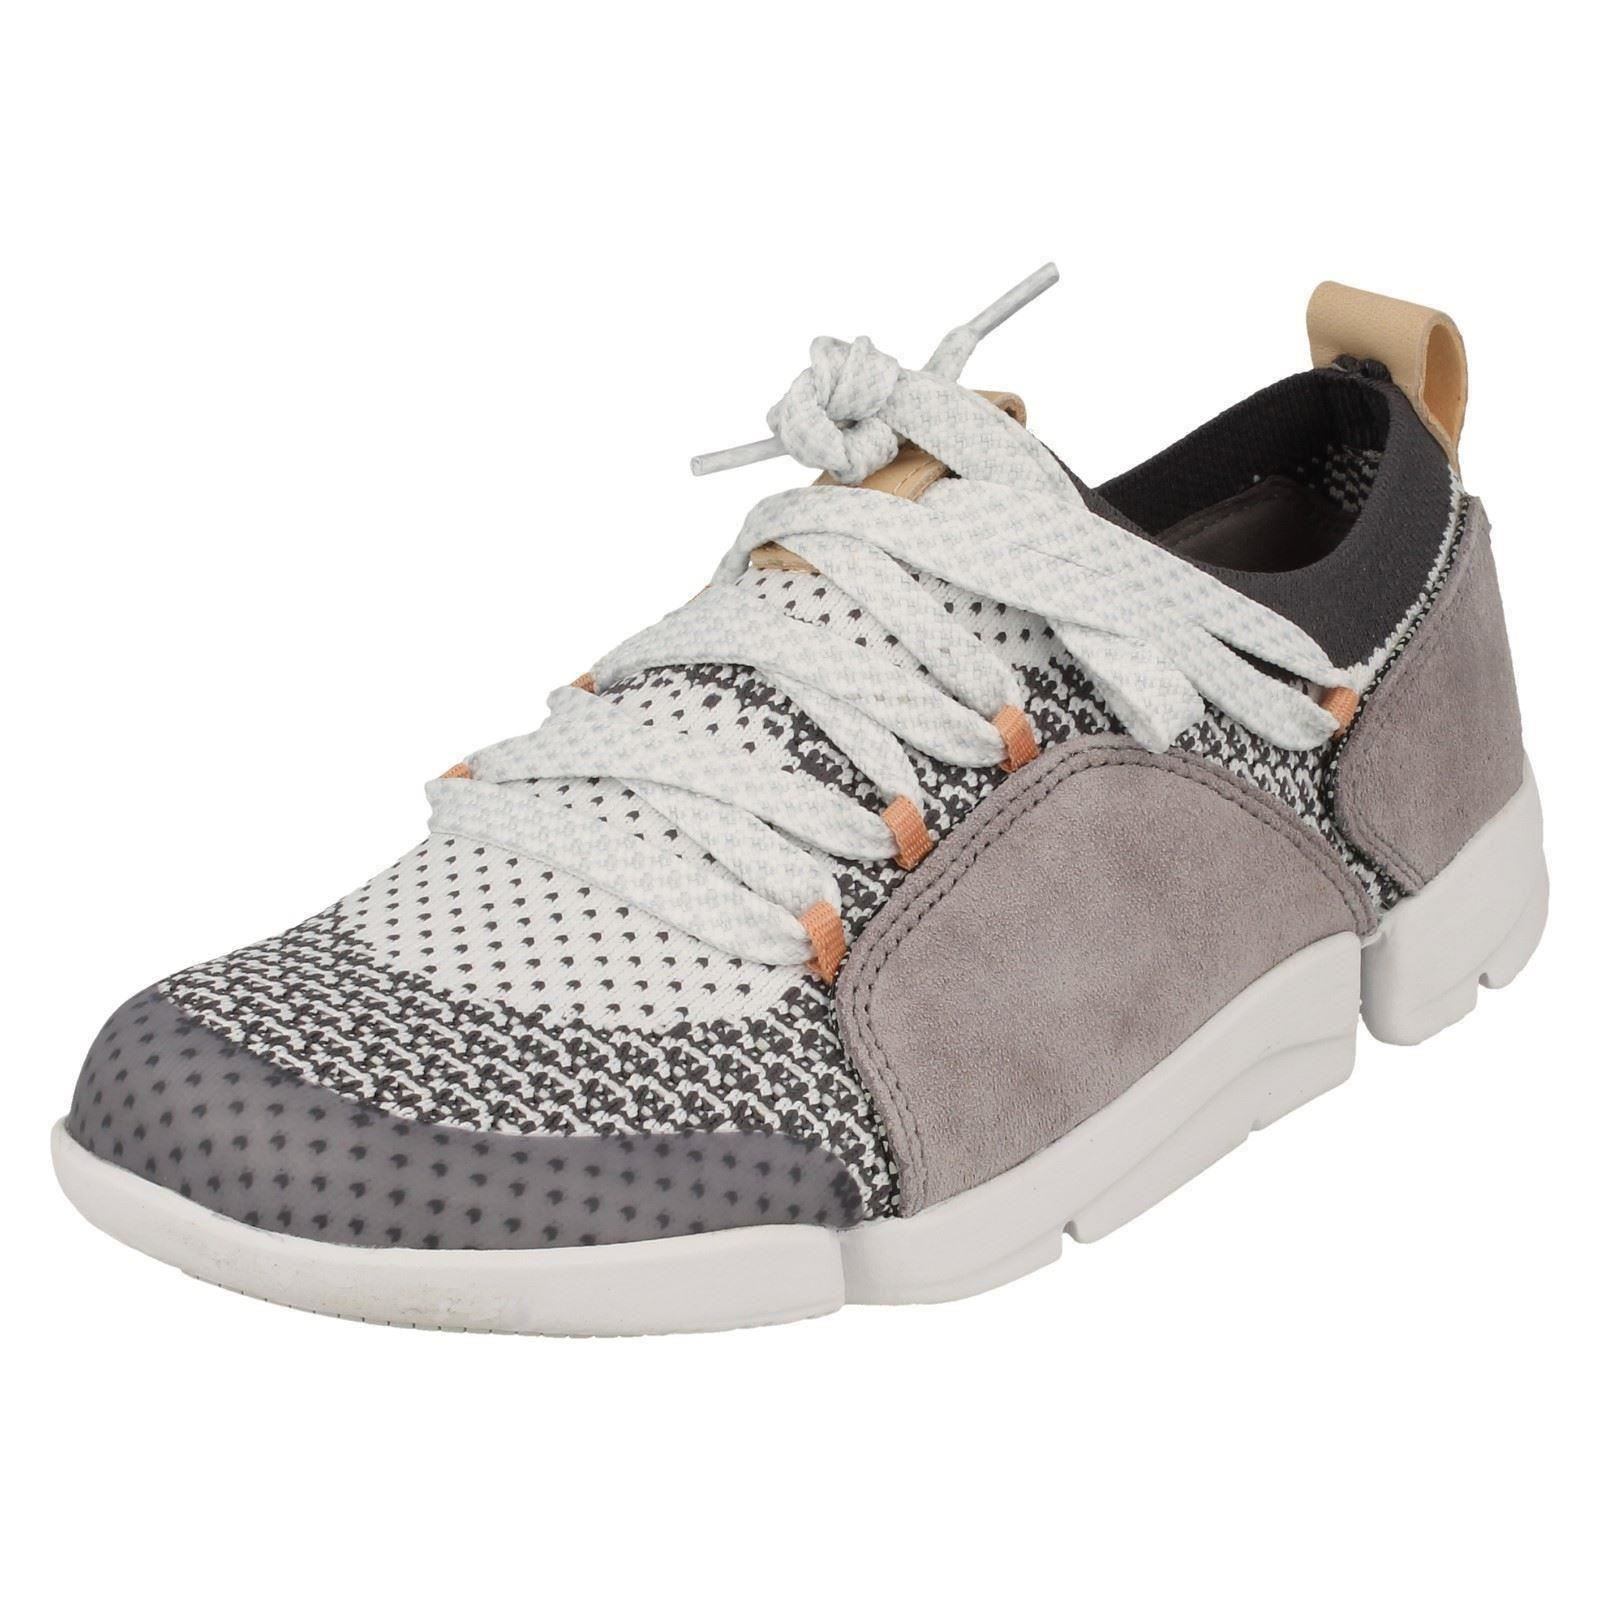 Ladies Clarks Casual Lightwight Trainers Shoes The The The Style - Tri Amelia 699435